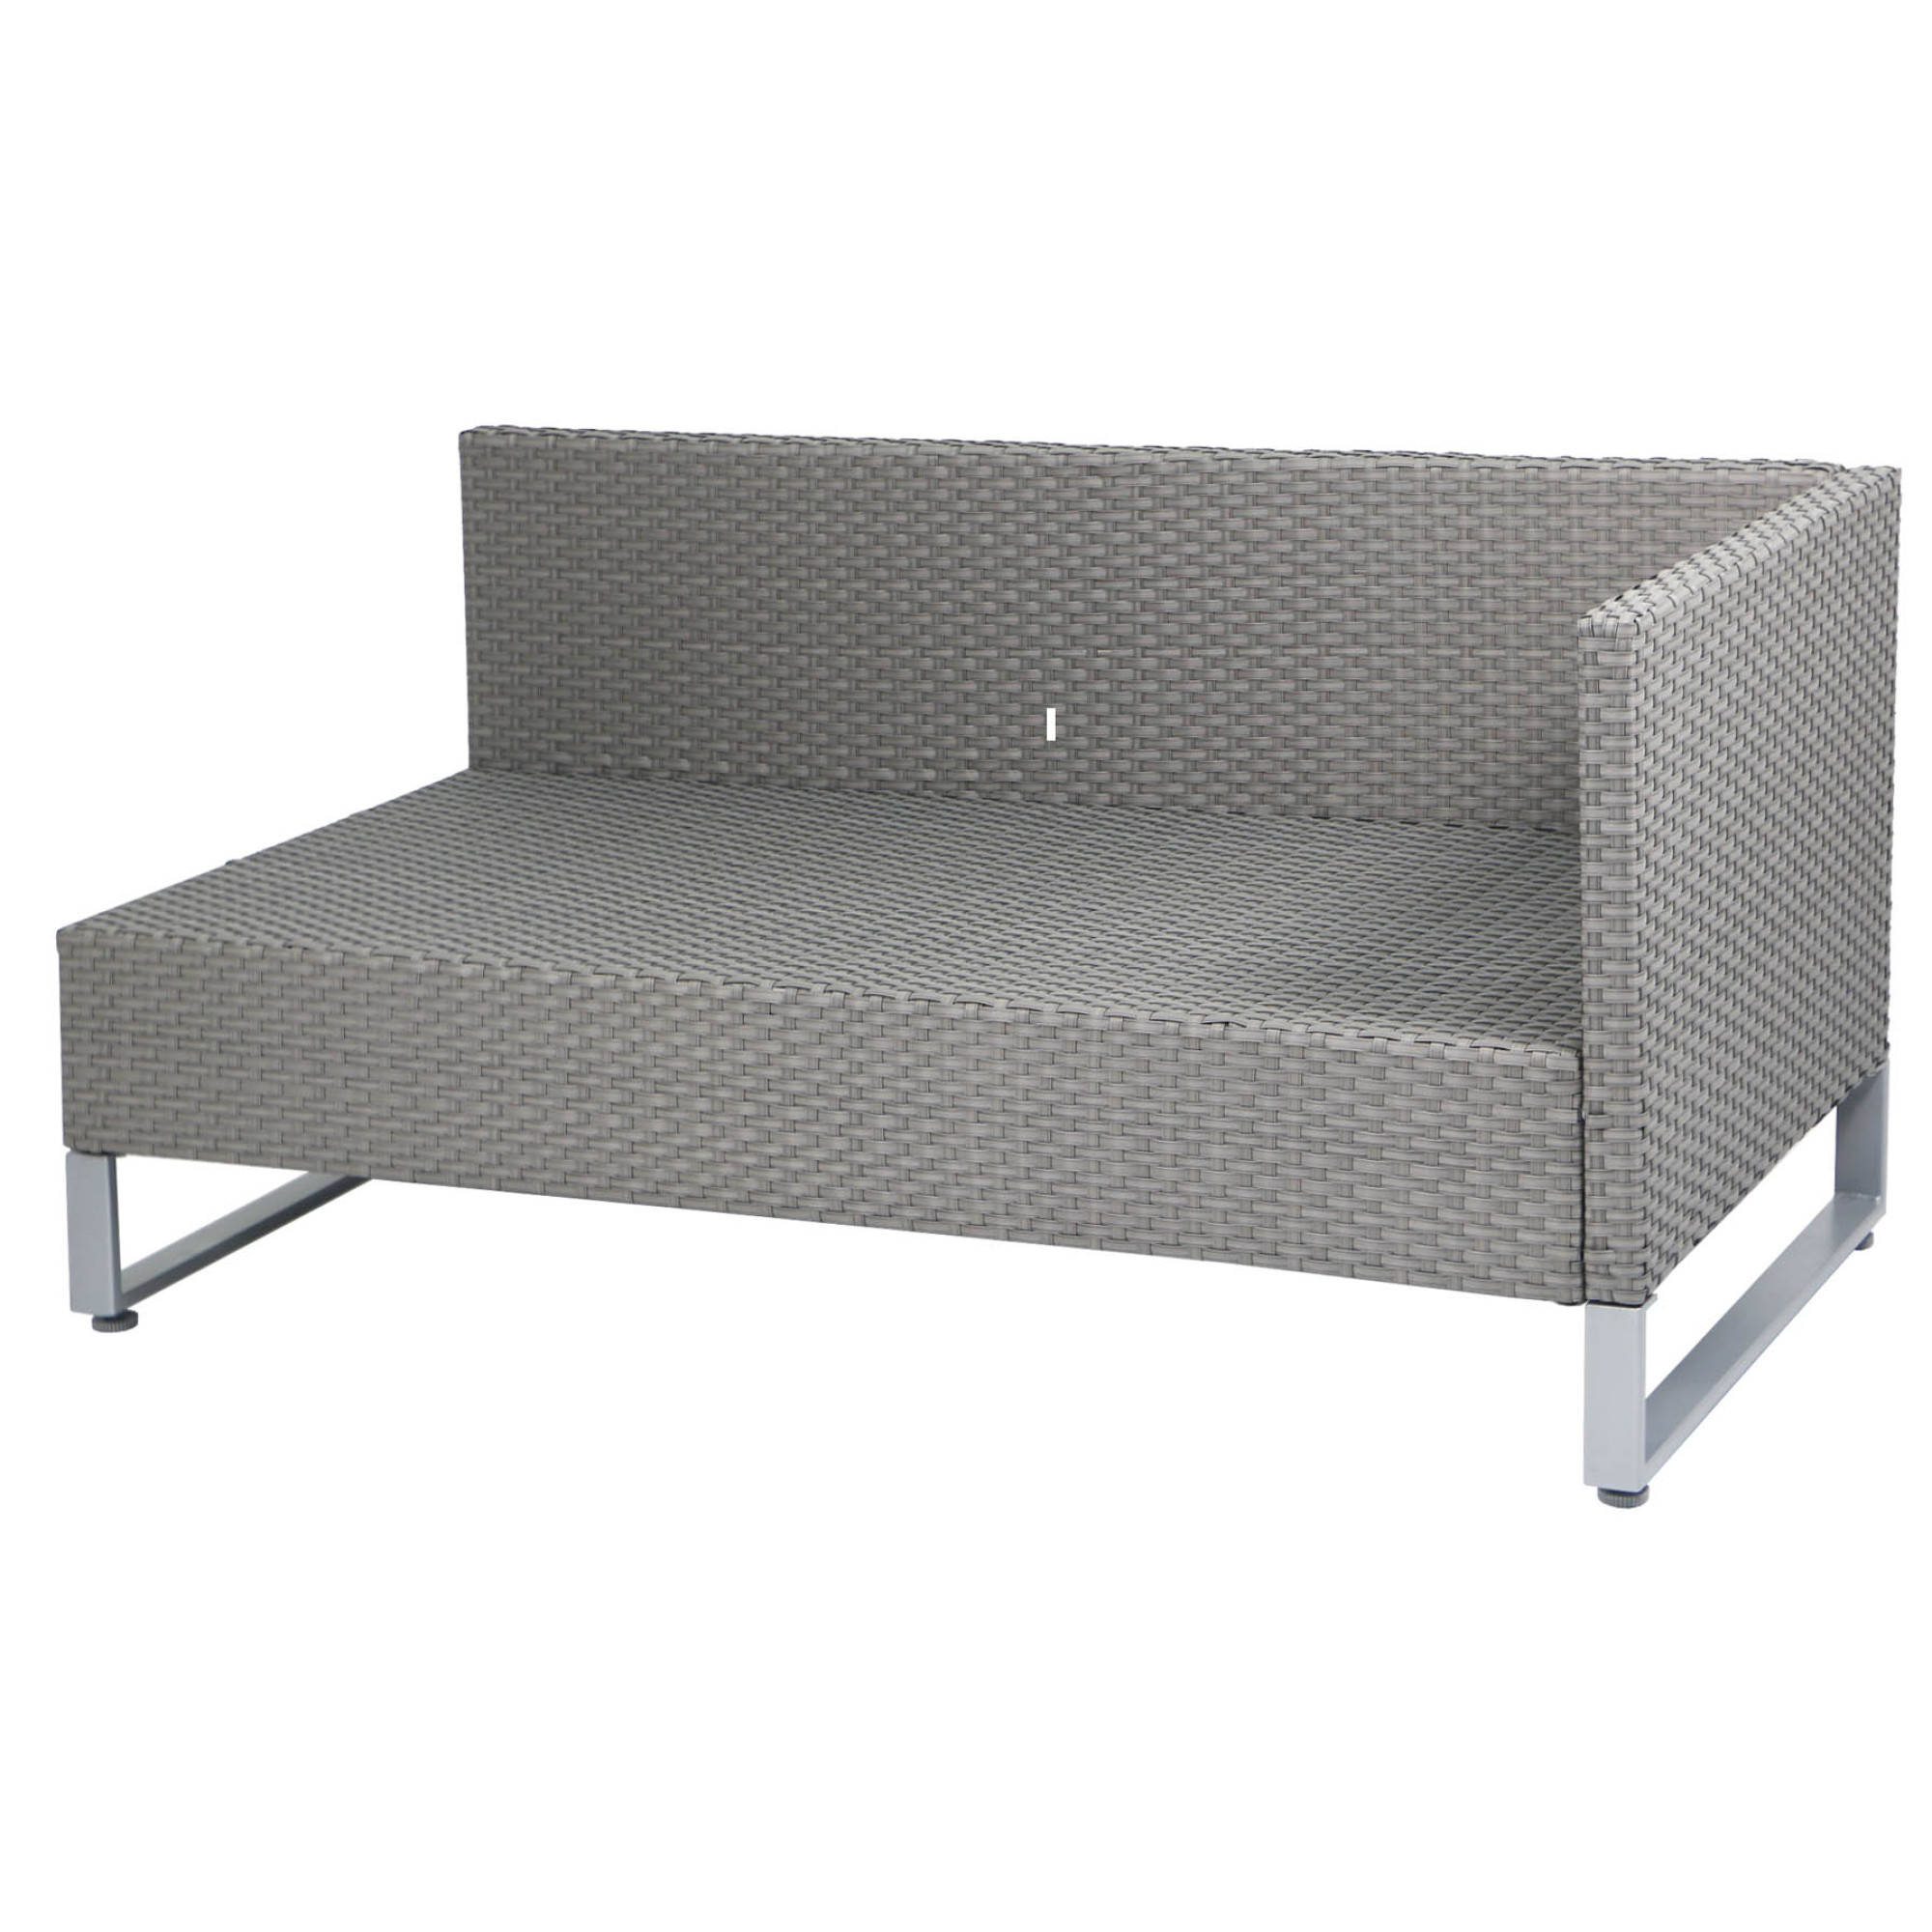 Outdoor Sofa Rattan Royal Synthetic Rattan Outdoor Sofa Set With Storage Box Grey